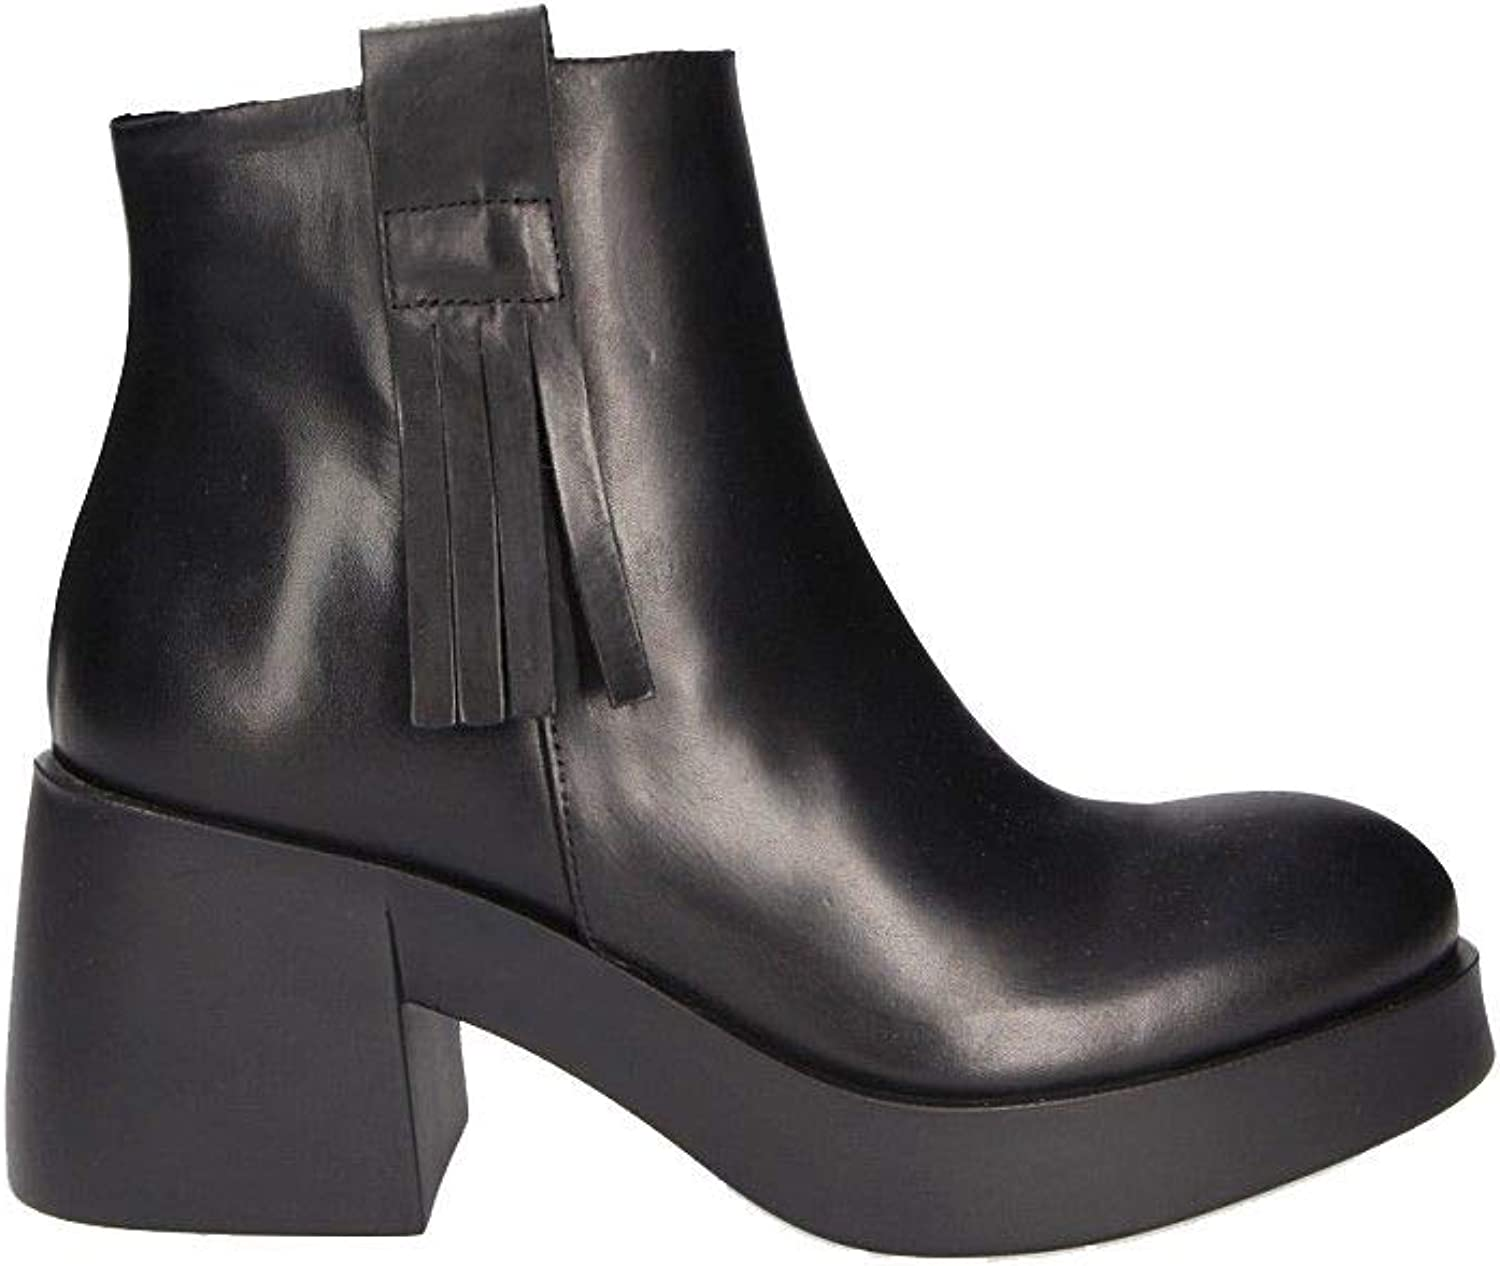 MOHAI Women's 8454NBLACK Black Leather Ankle Boots